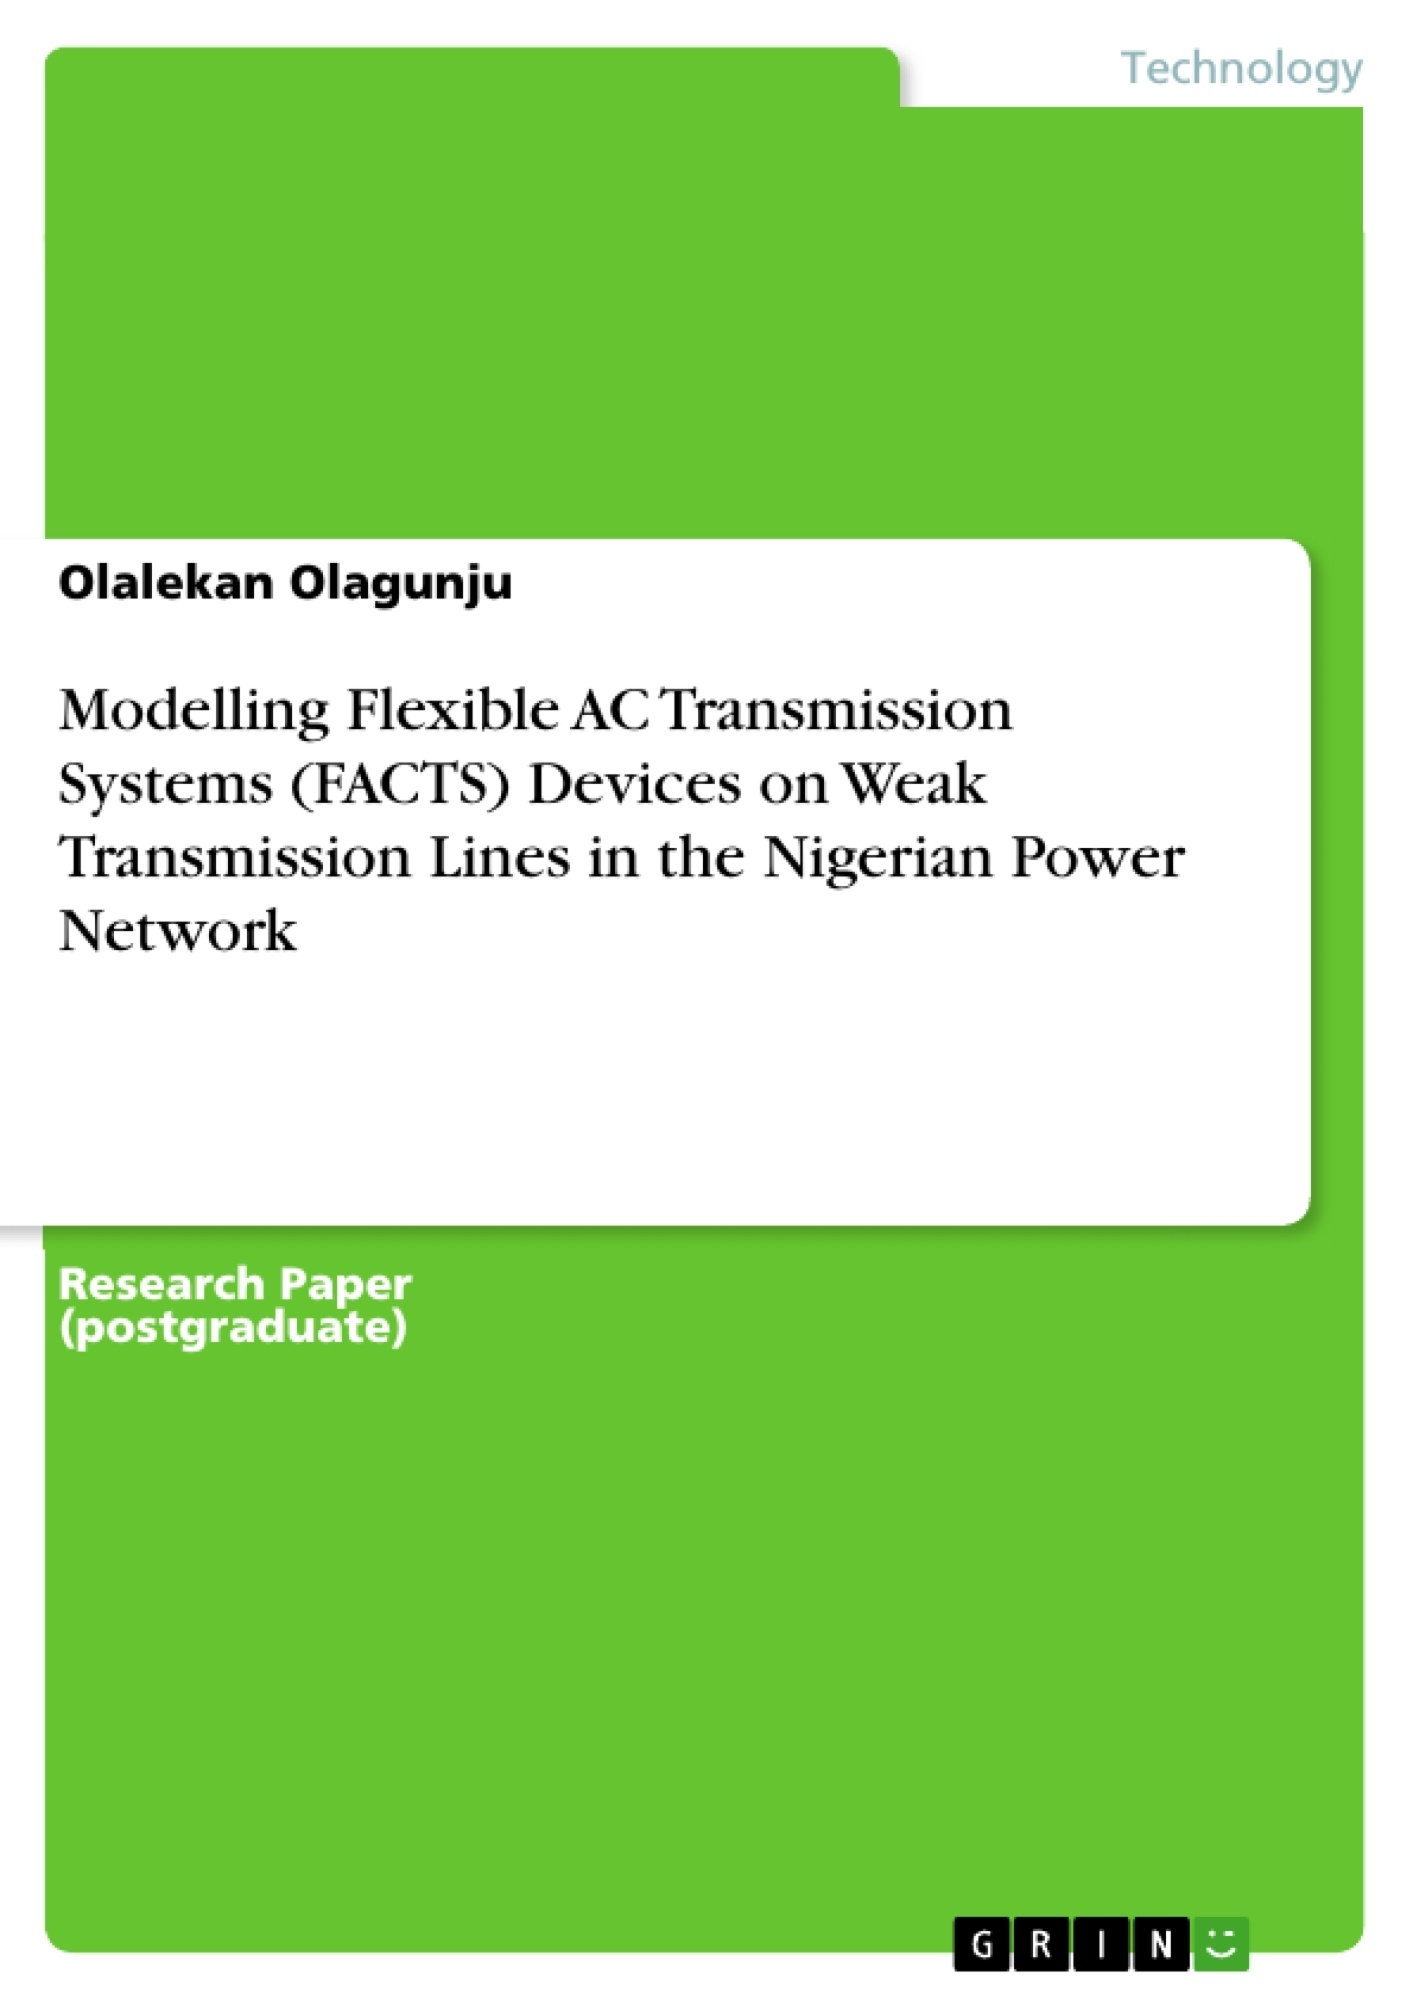 Title: Modelling Flexible AC Transmission Systems (FACTS) Devices on Weak Transmission Lines in the Nigerian Power Network